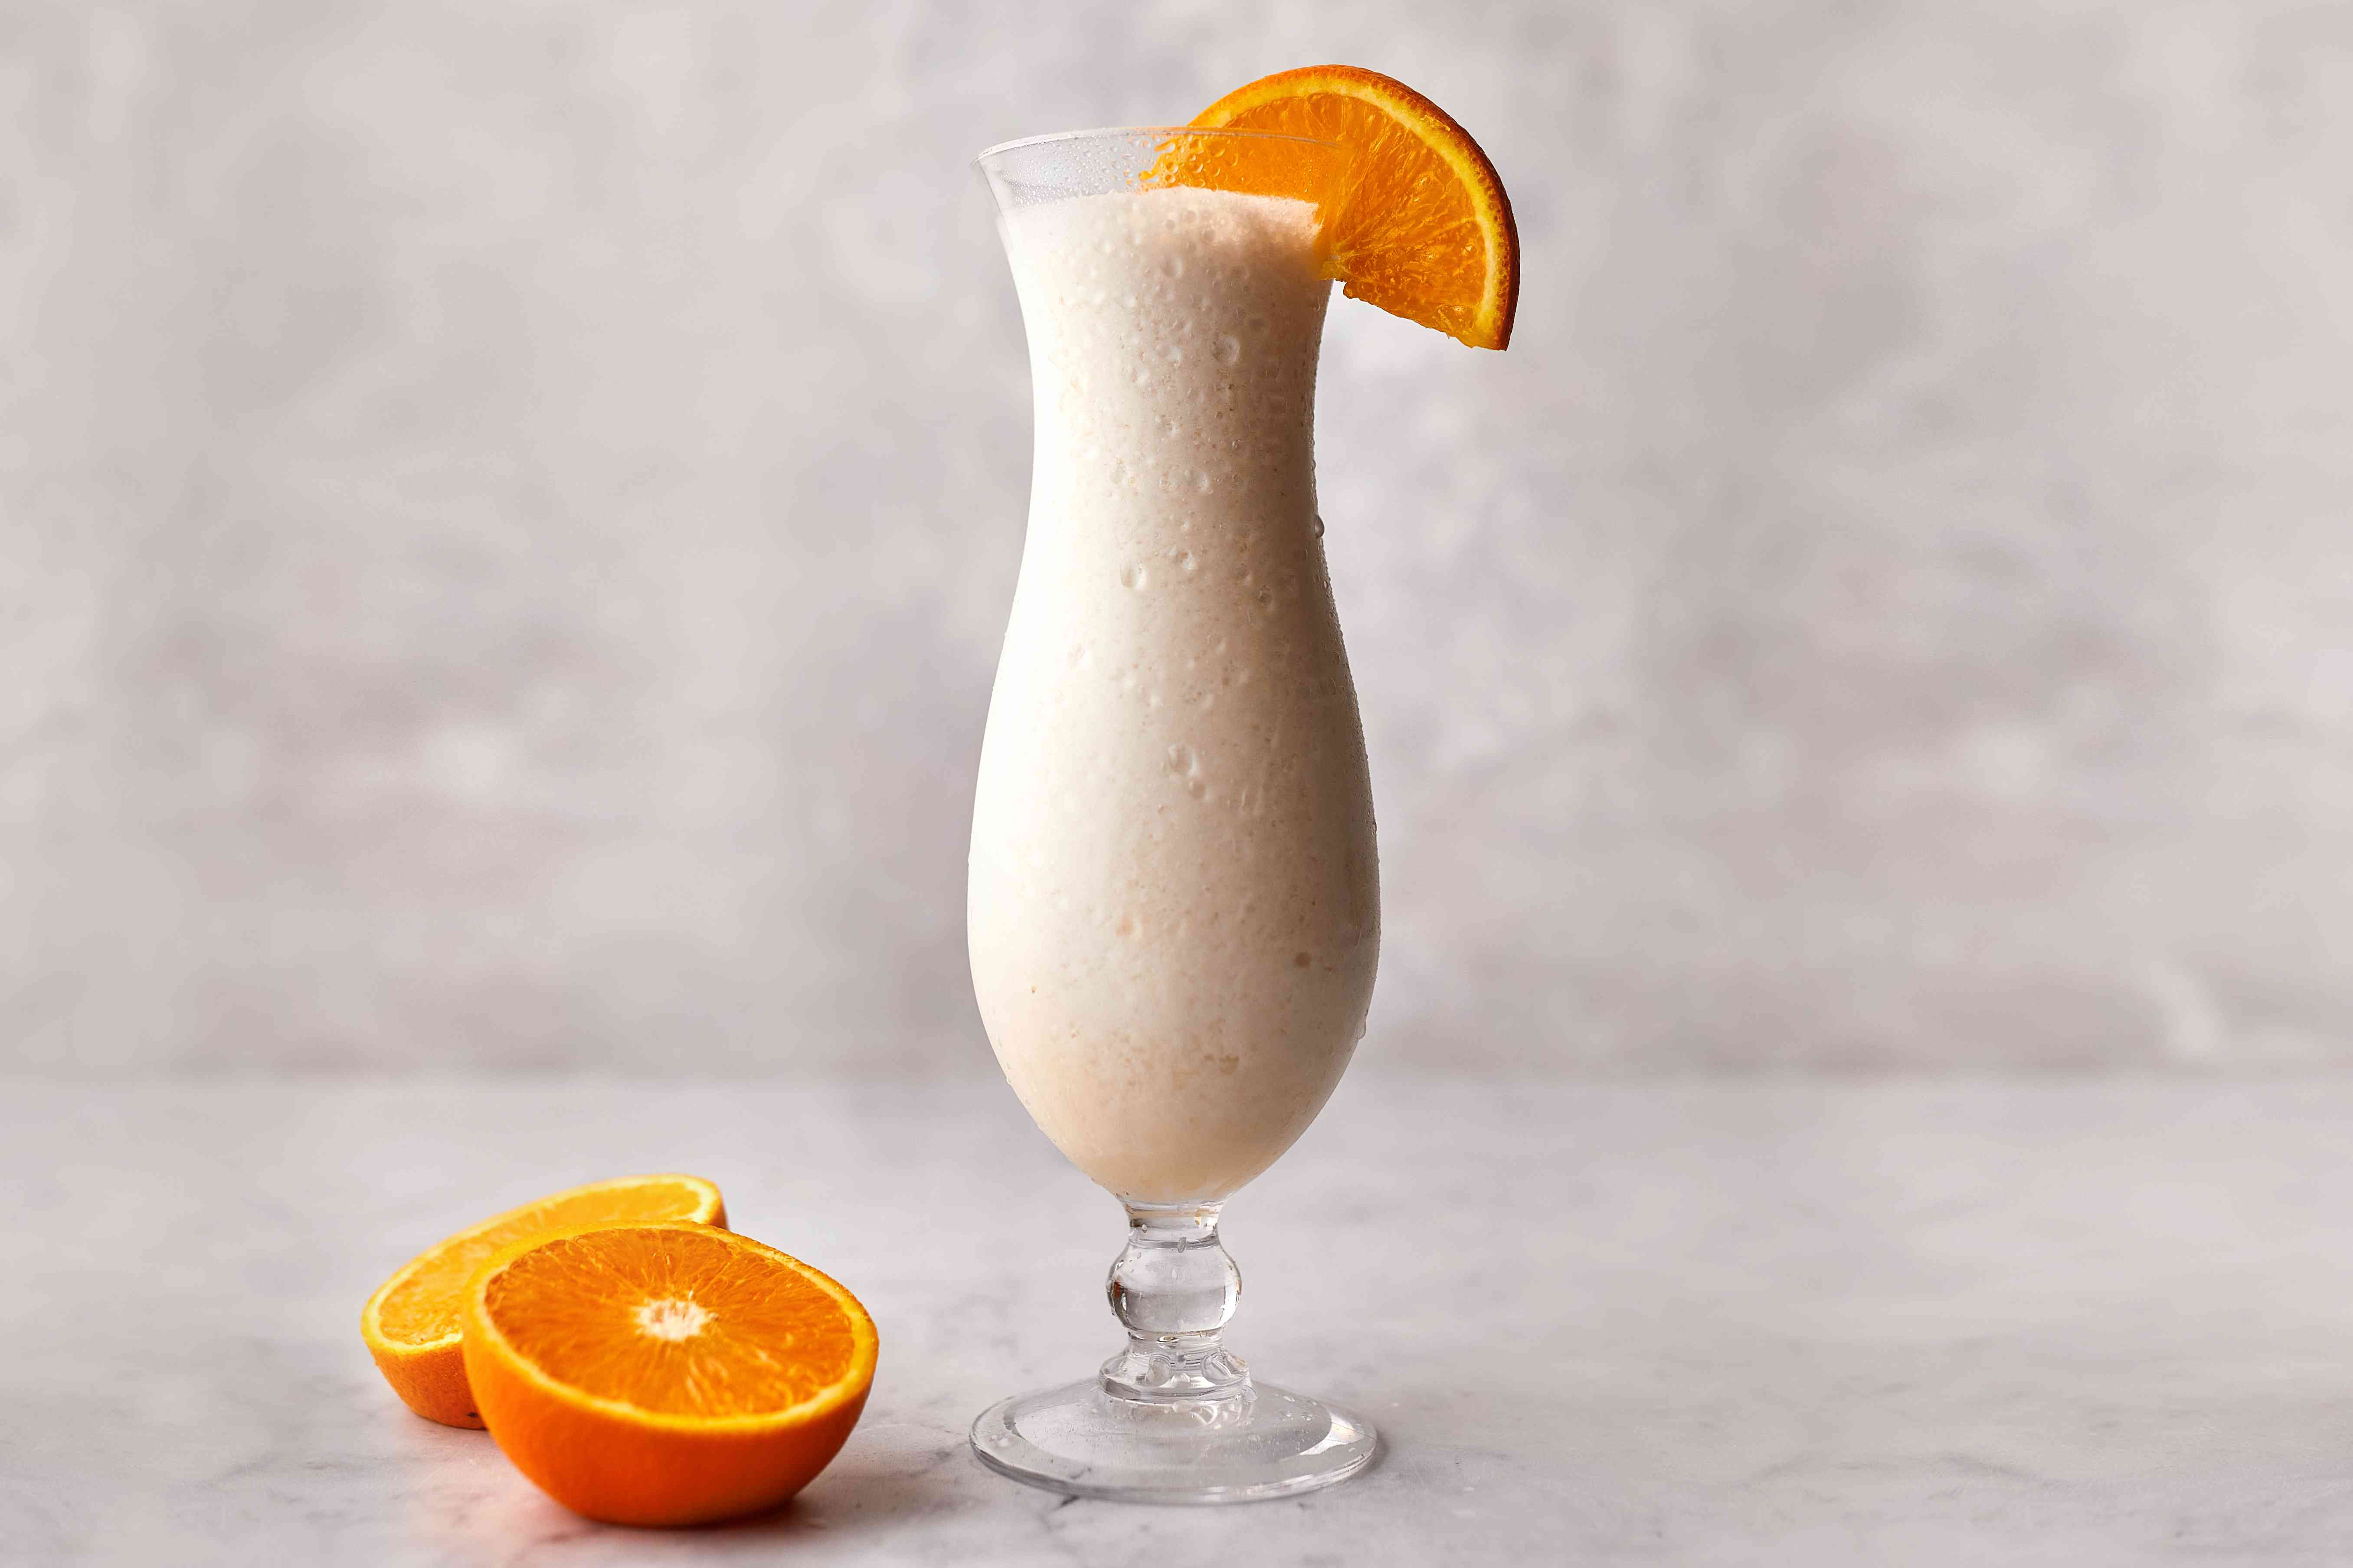 Virgin Pina Colada in a chilled hurricane glass and garnished with an orange slice